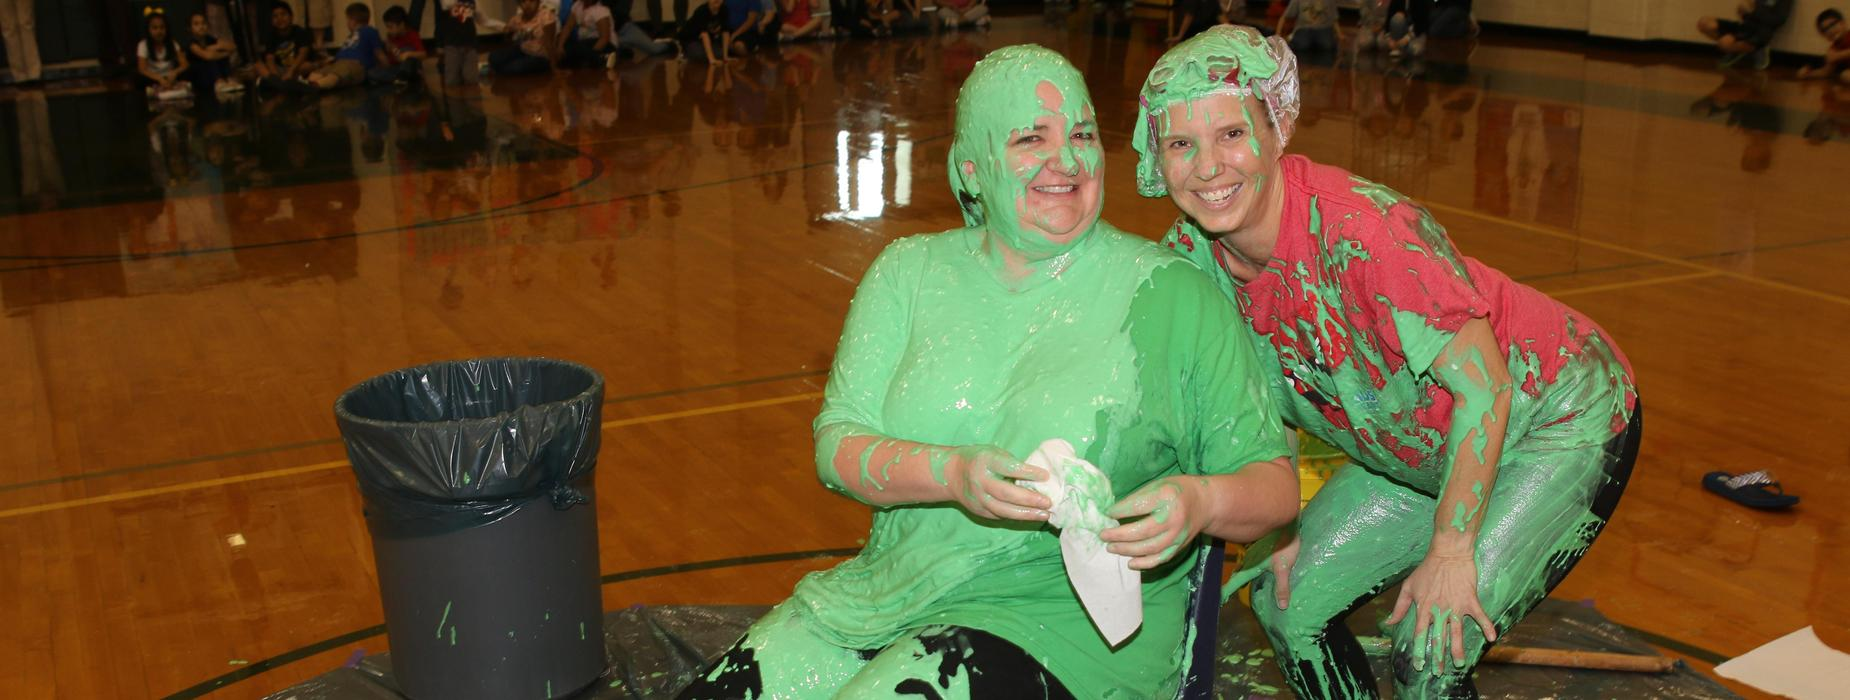 Two staff members after being slimed.